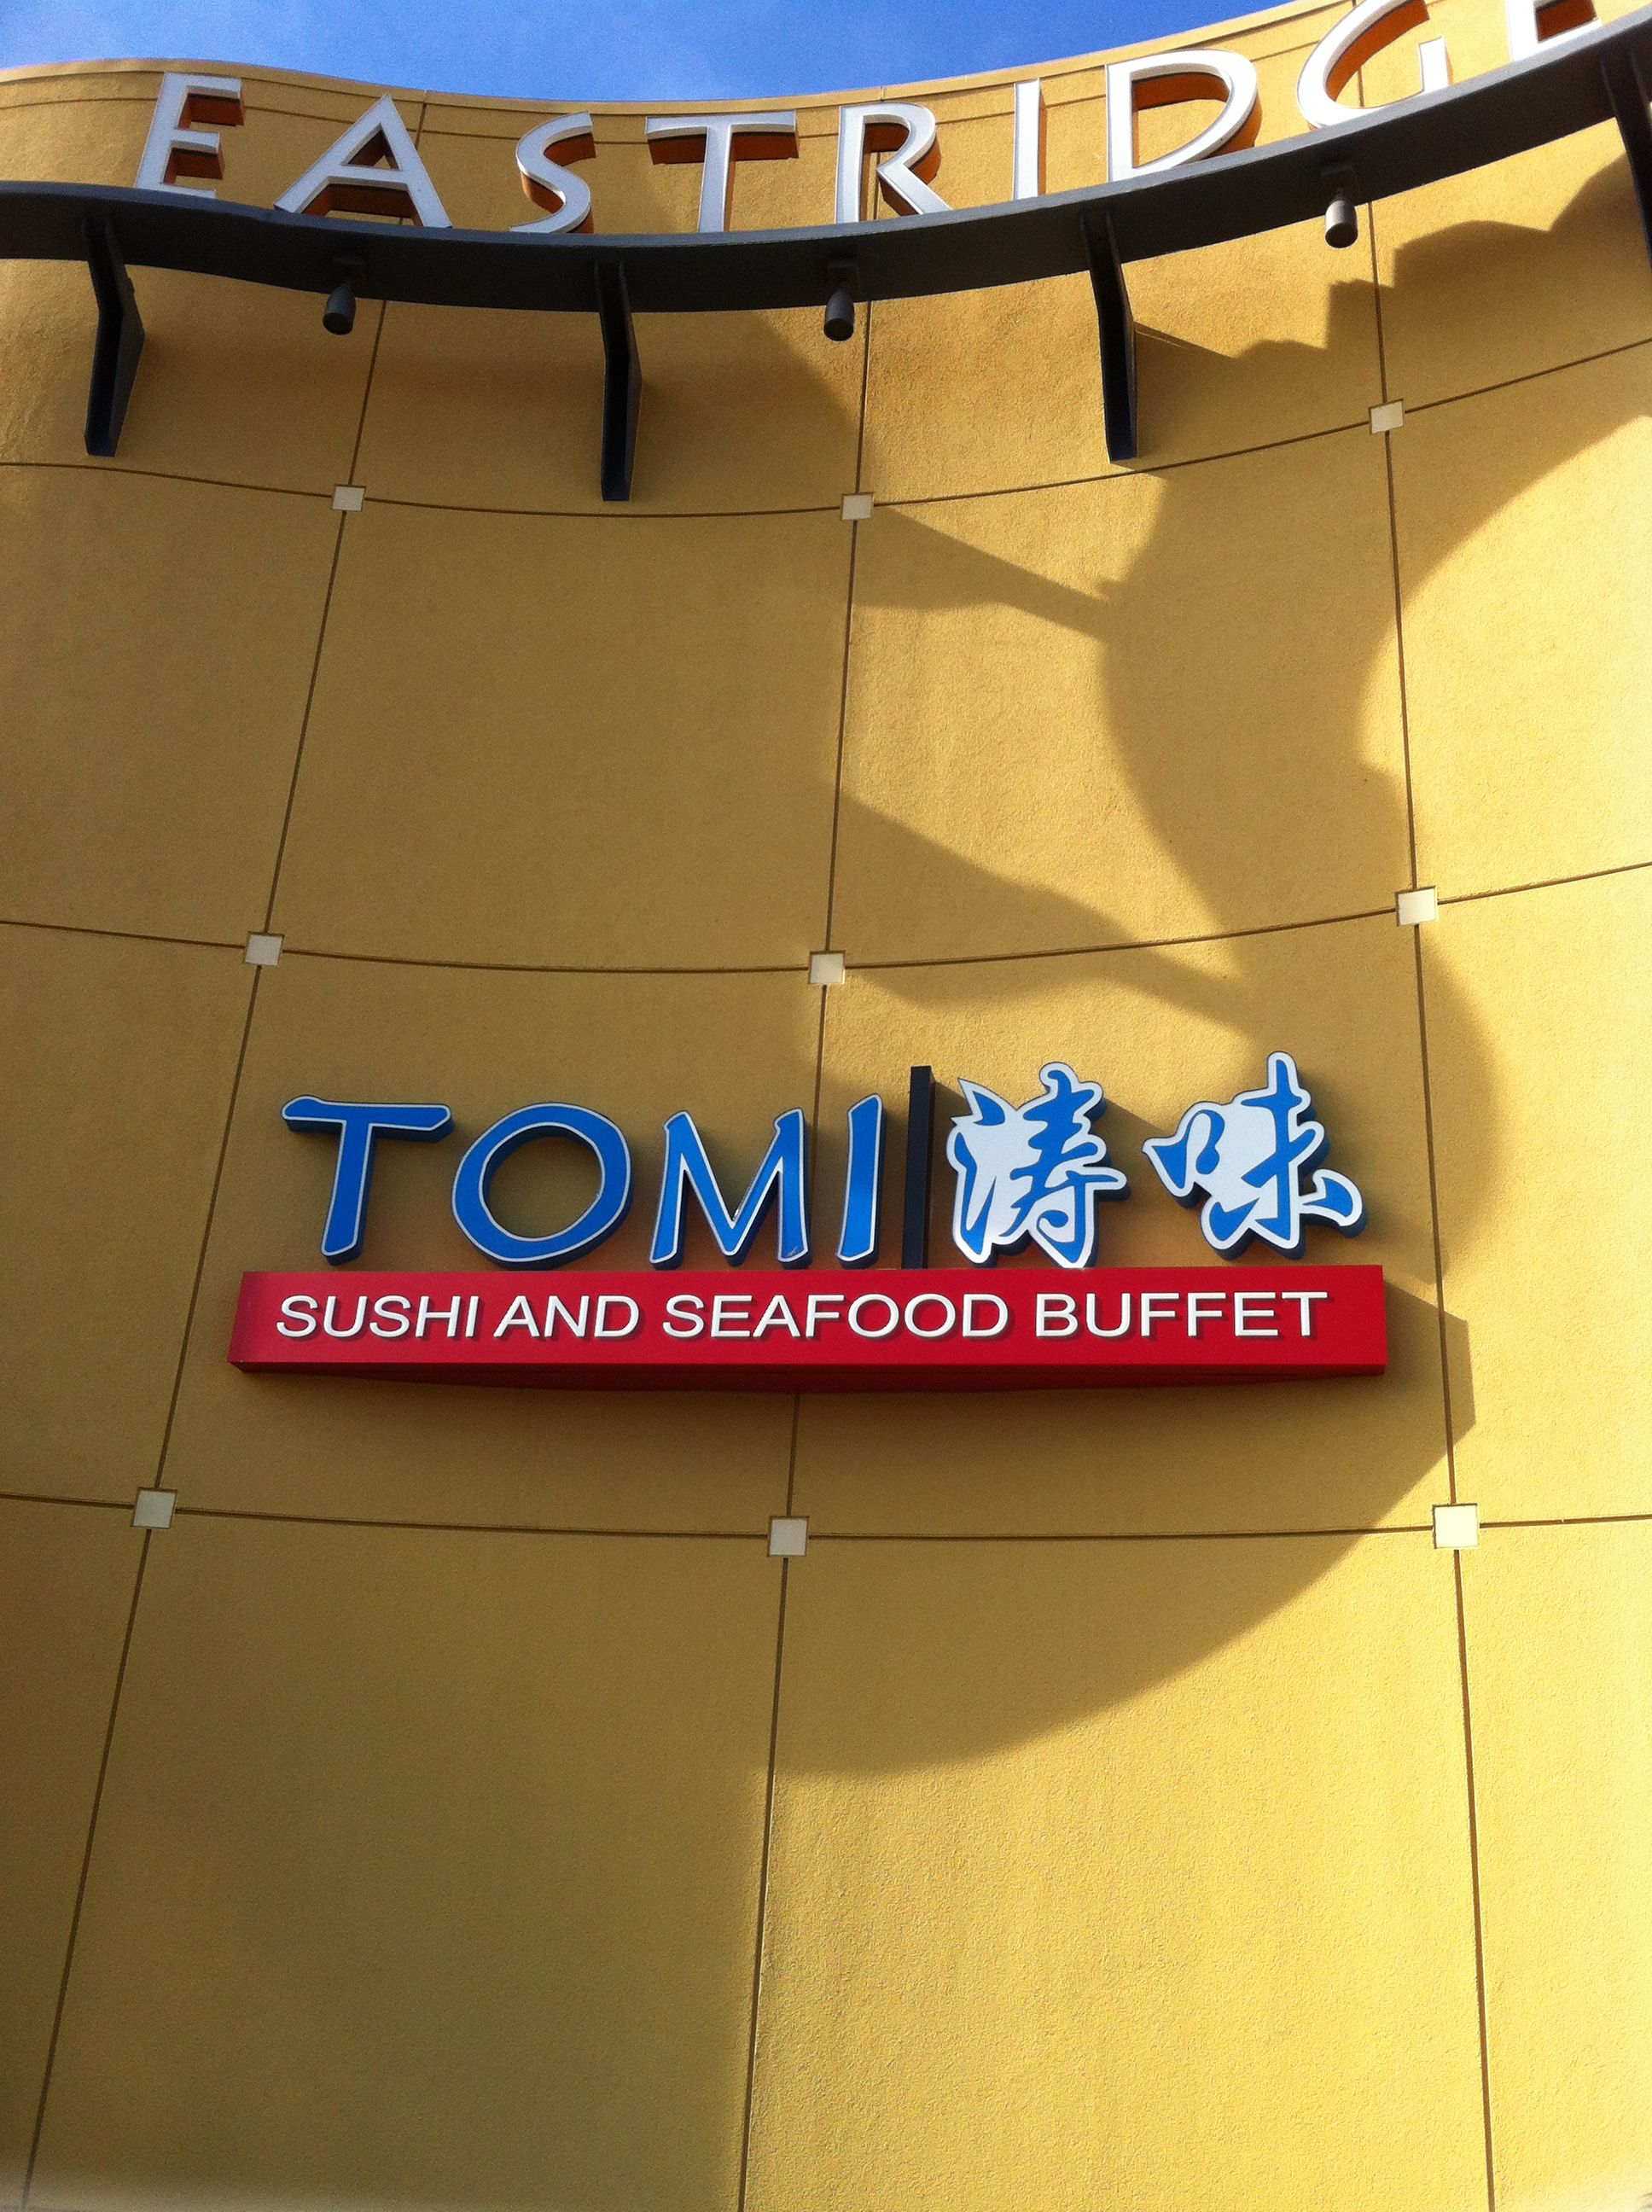 Tomi Asian Buffet restaurant in San Jose Calif by Eastridge mall ...